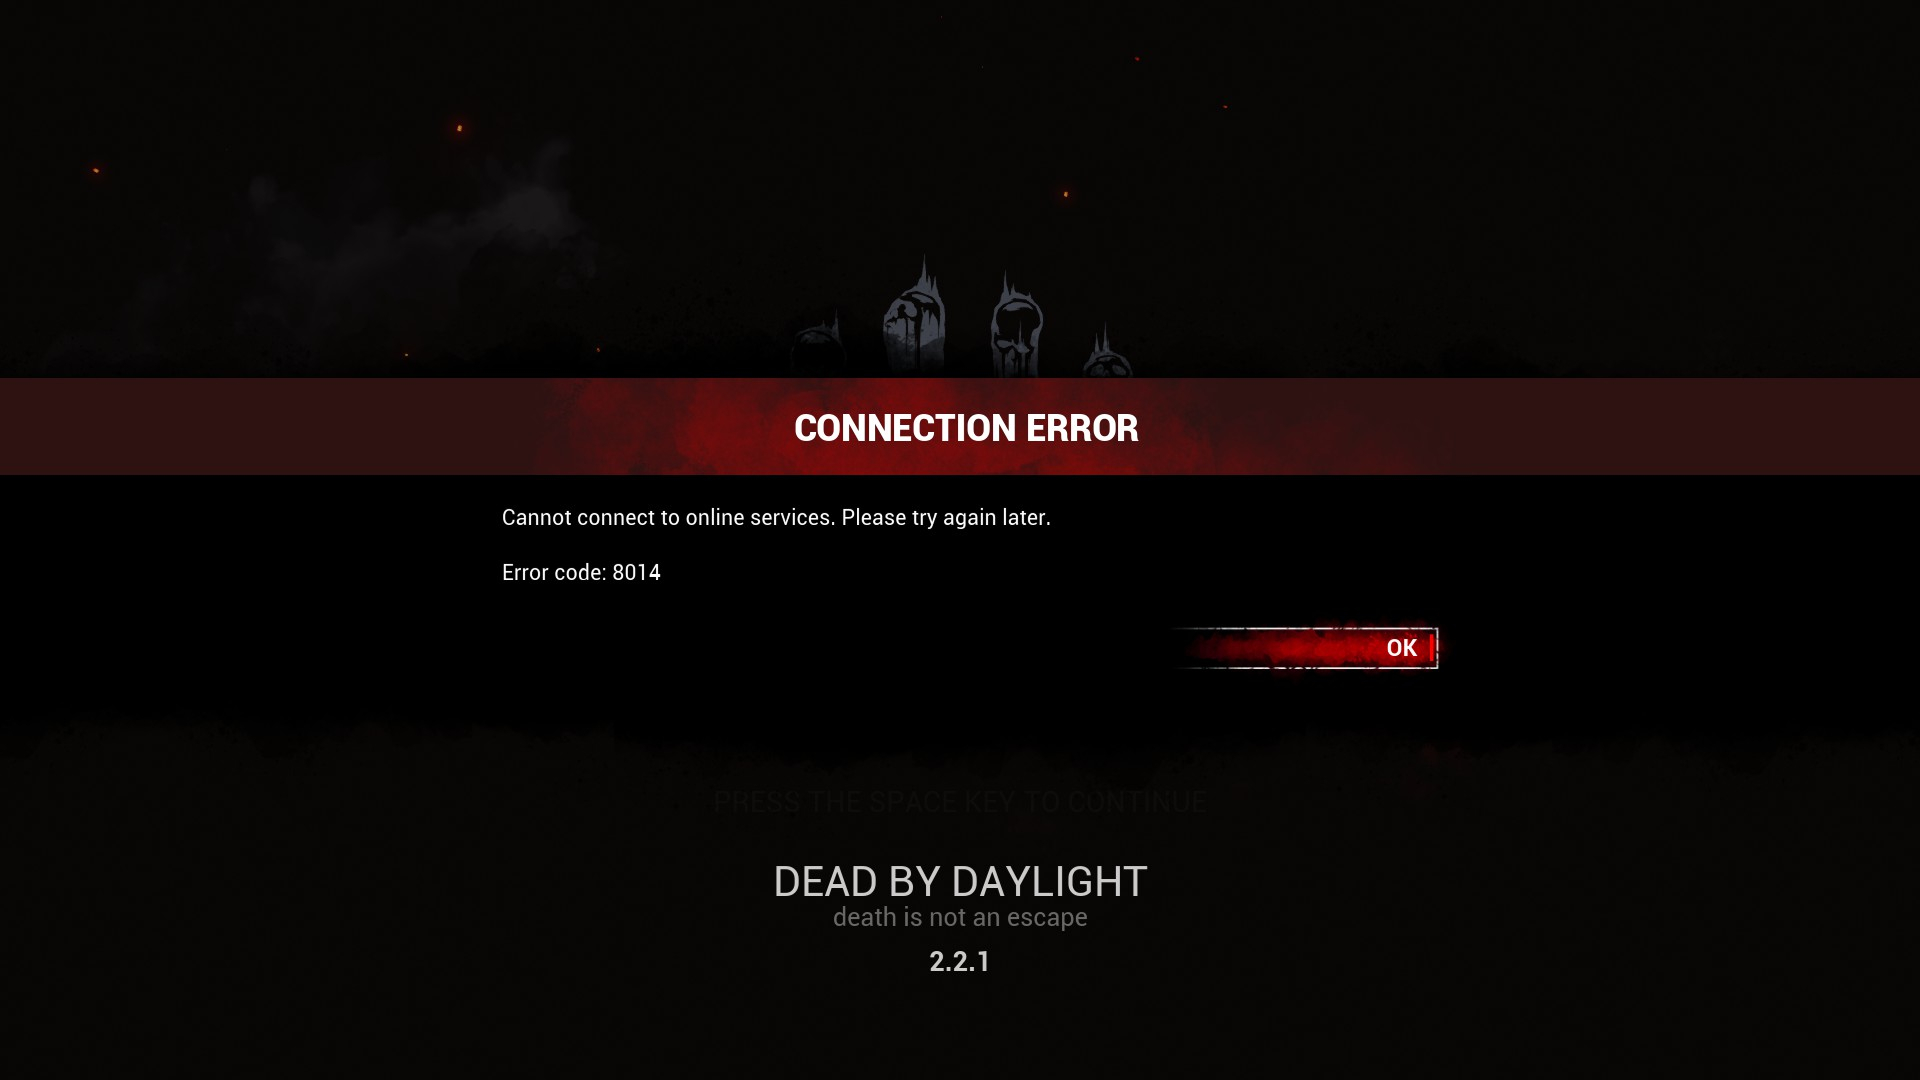 Dead by Daylight Cannot connect to online services: Error